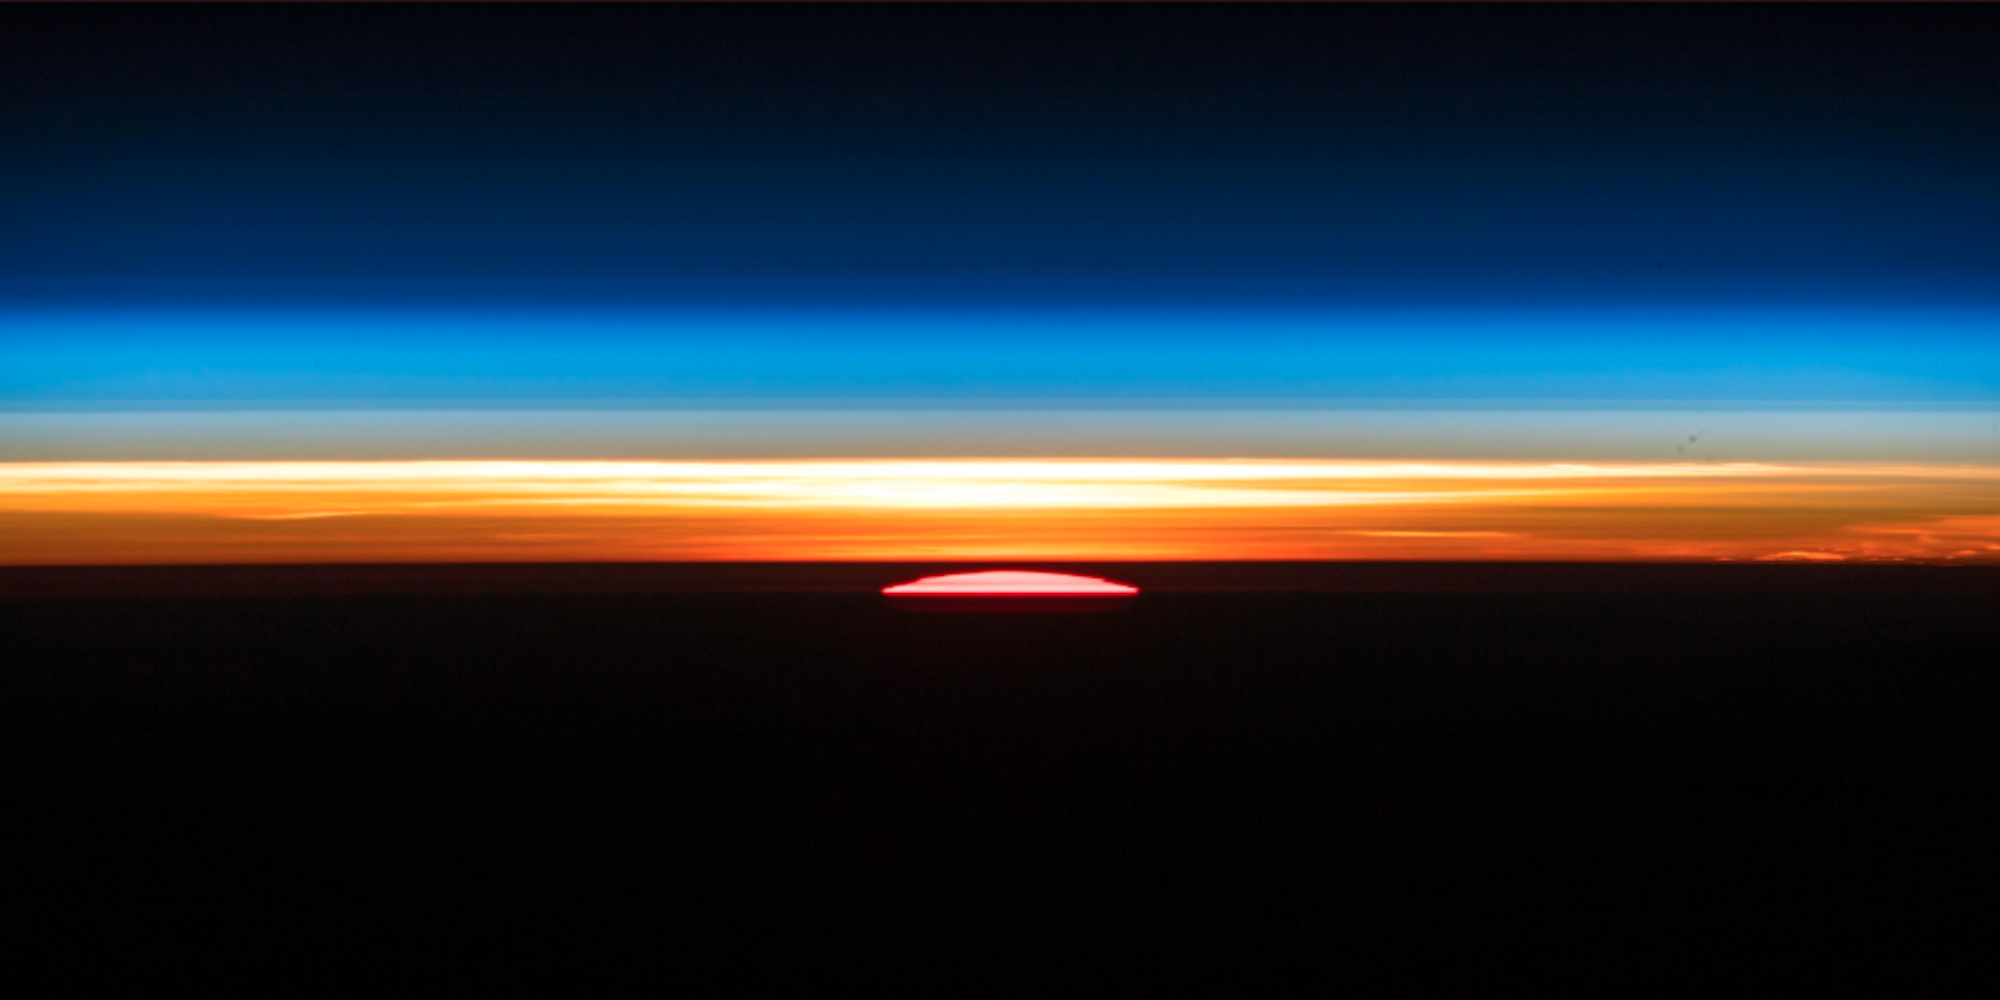 ISS astronaut's photos of orbital sunrise will leave you speechless